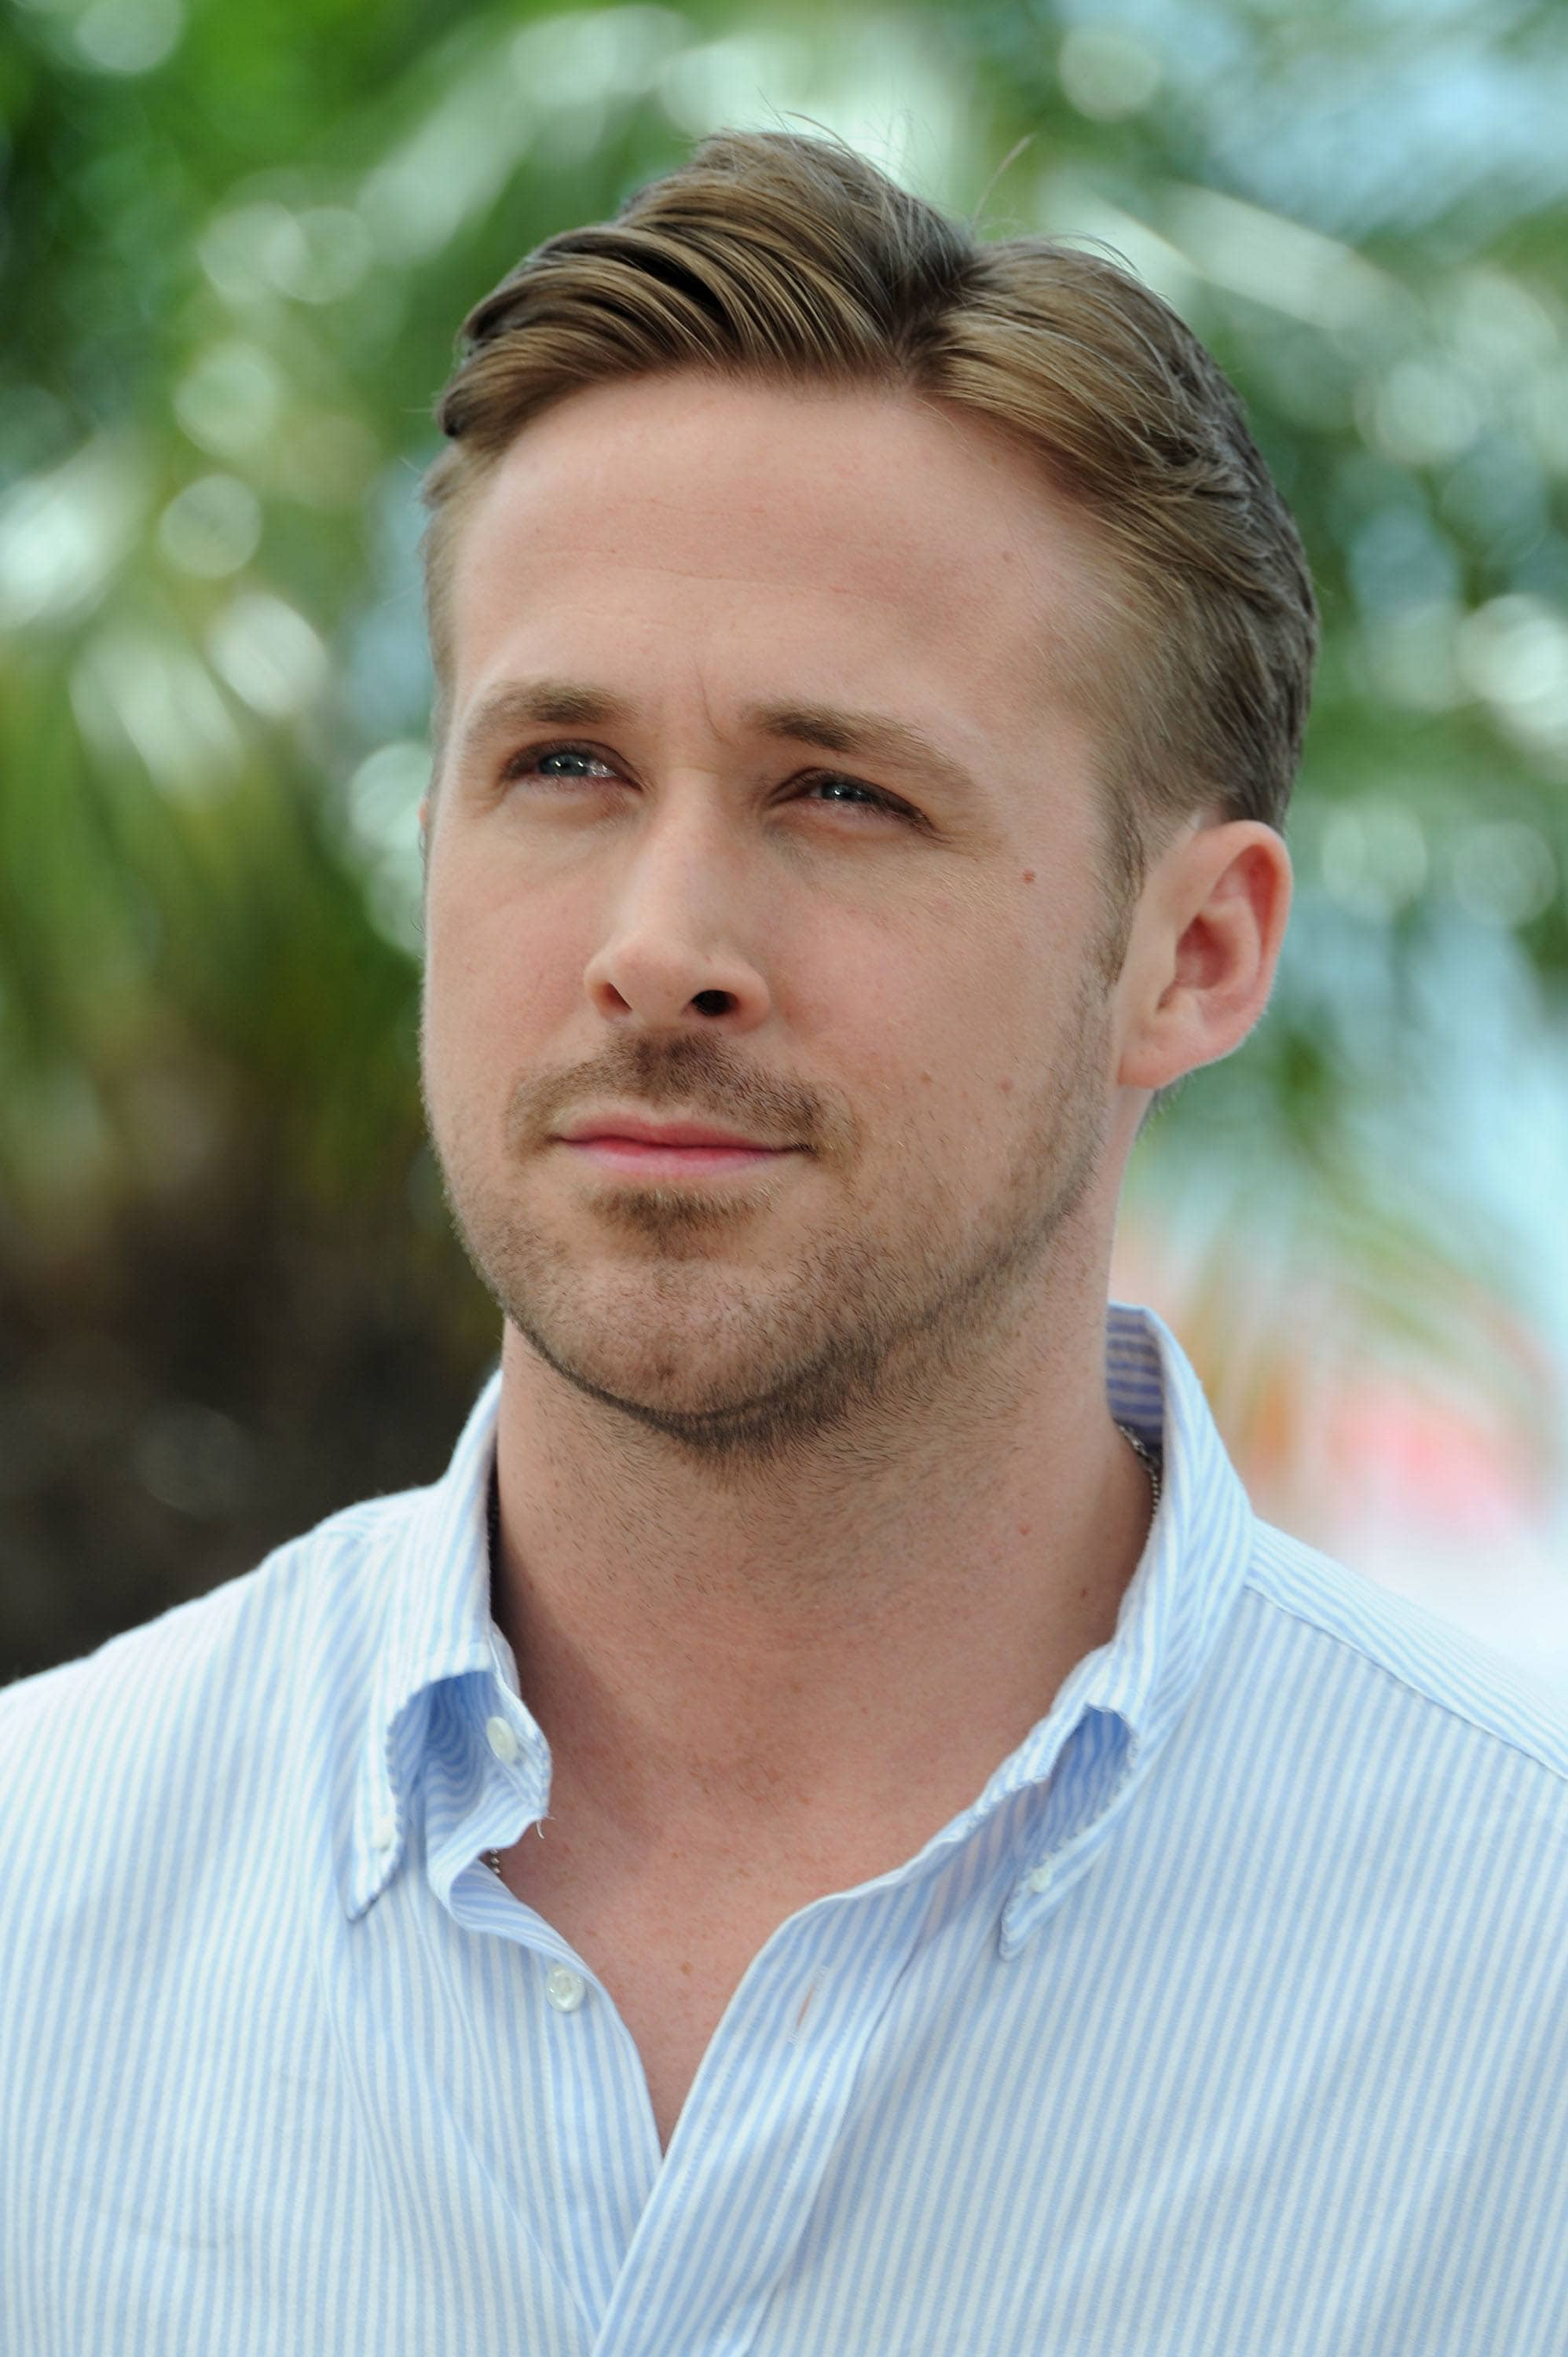 Ryan Gosling haircut: Ryan Gosling with a mid-length combover with short tapered sides, wearing a blue shirt